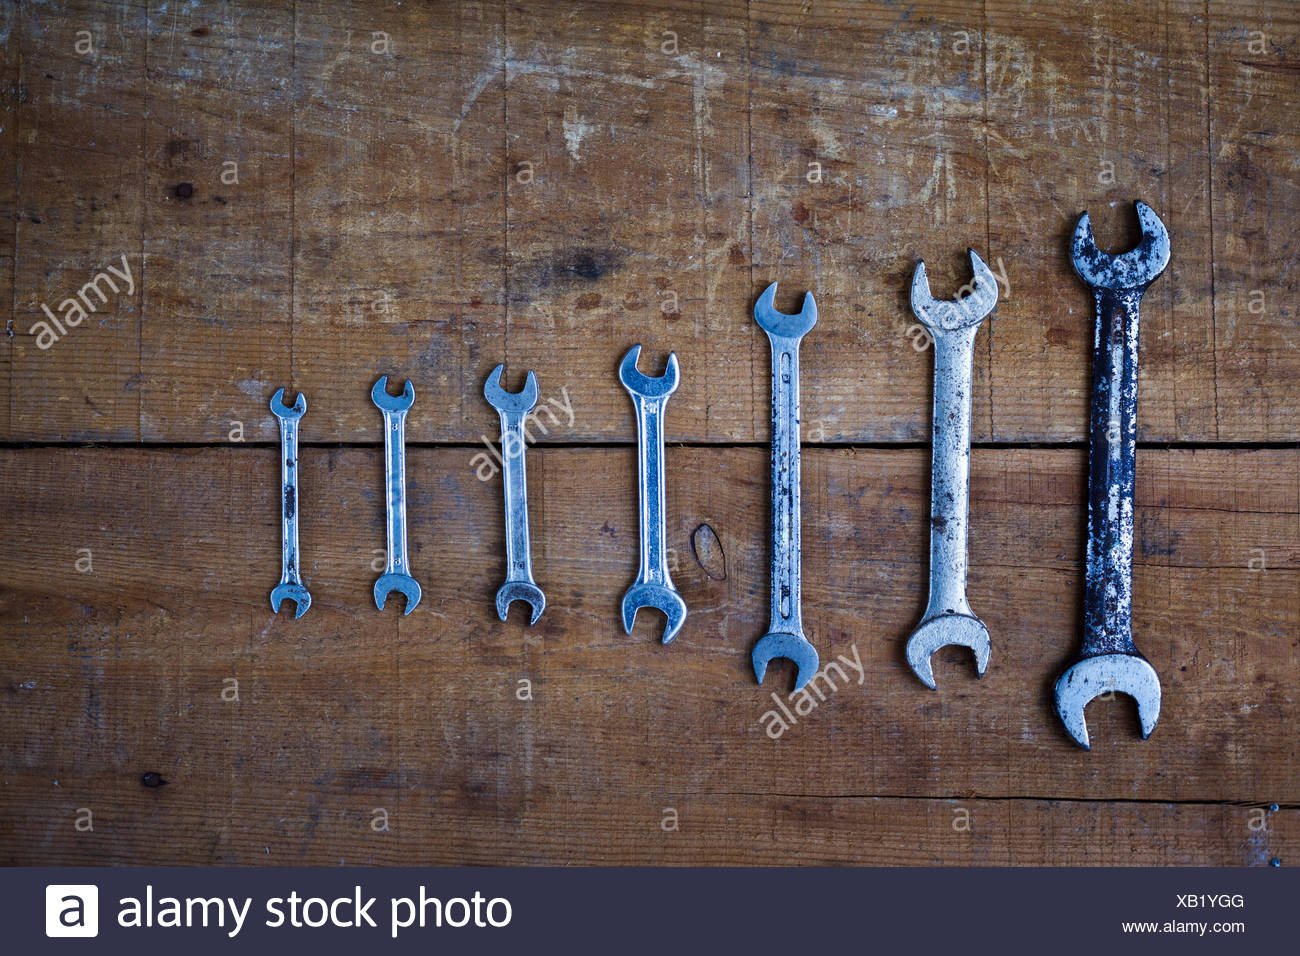 Directly Above Shot Of Spanners On Table - Stock Image